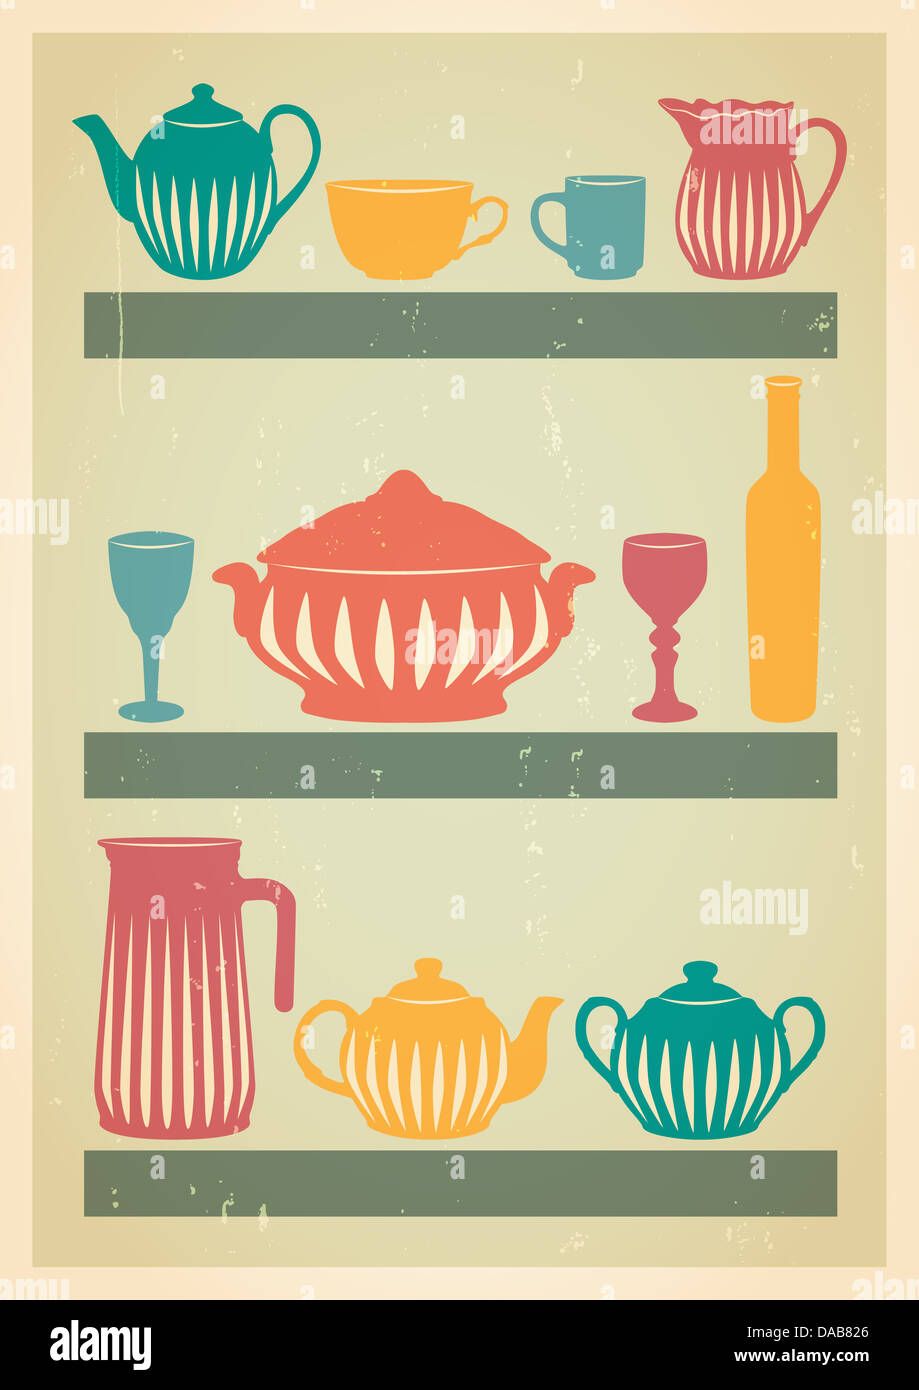 Dishes silhouette set in retro style. Mid century art. - Stock Image